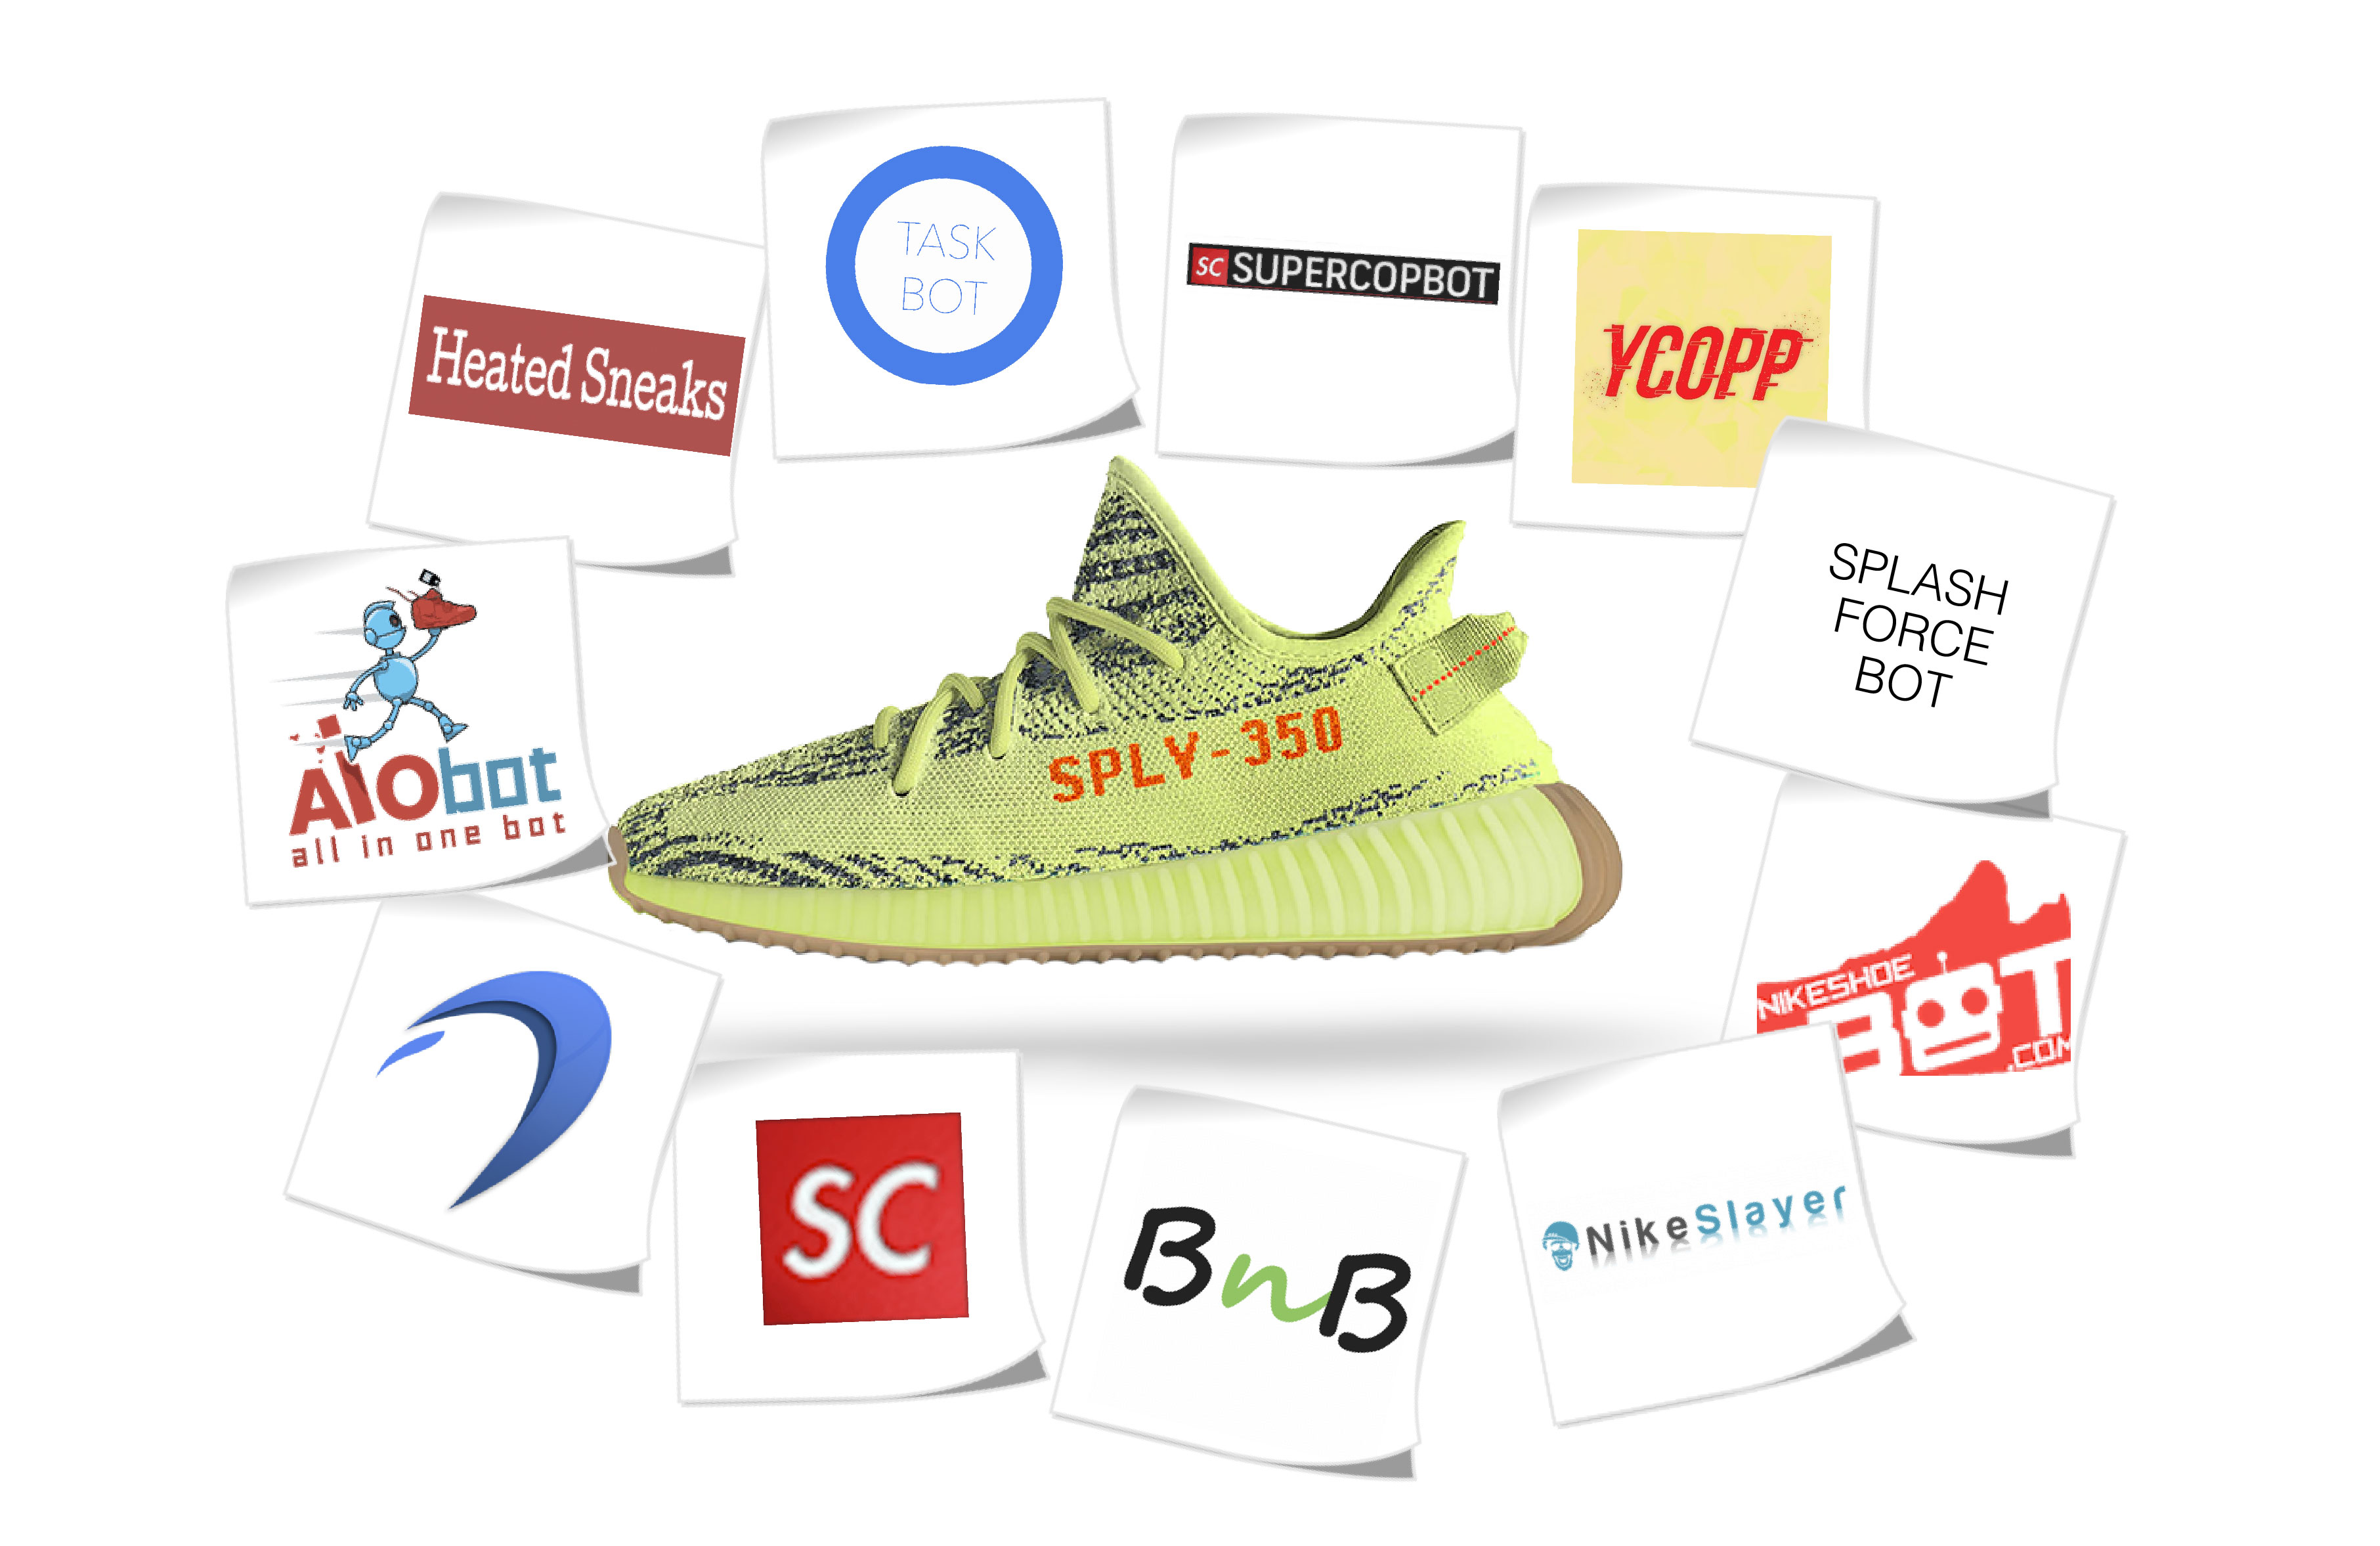 sneaker Bots and Semi Frozen Yellow